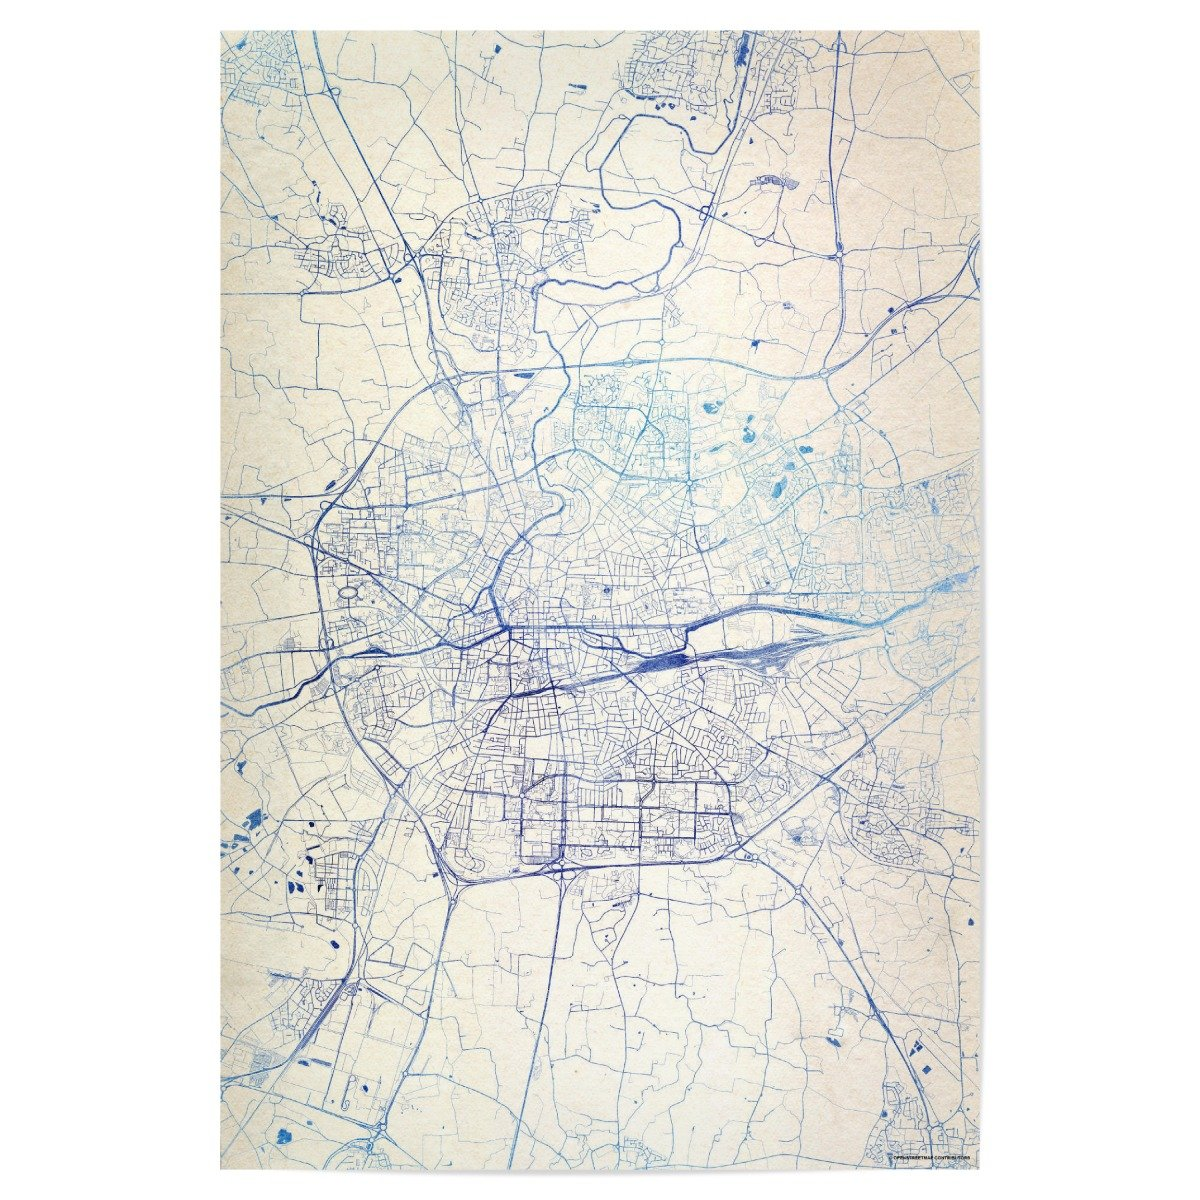 Map Of France Rennes.Artboxone Poster Cities Rennes France Blue Infusion Map Ii 45x30 Cm